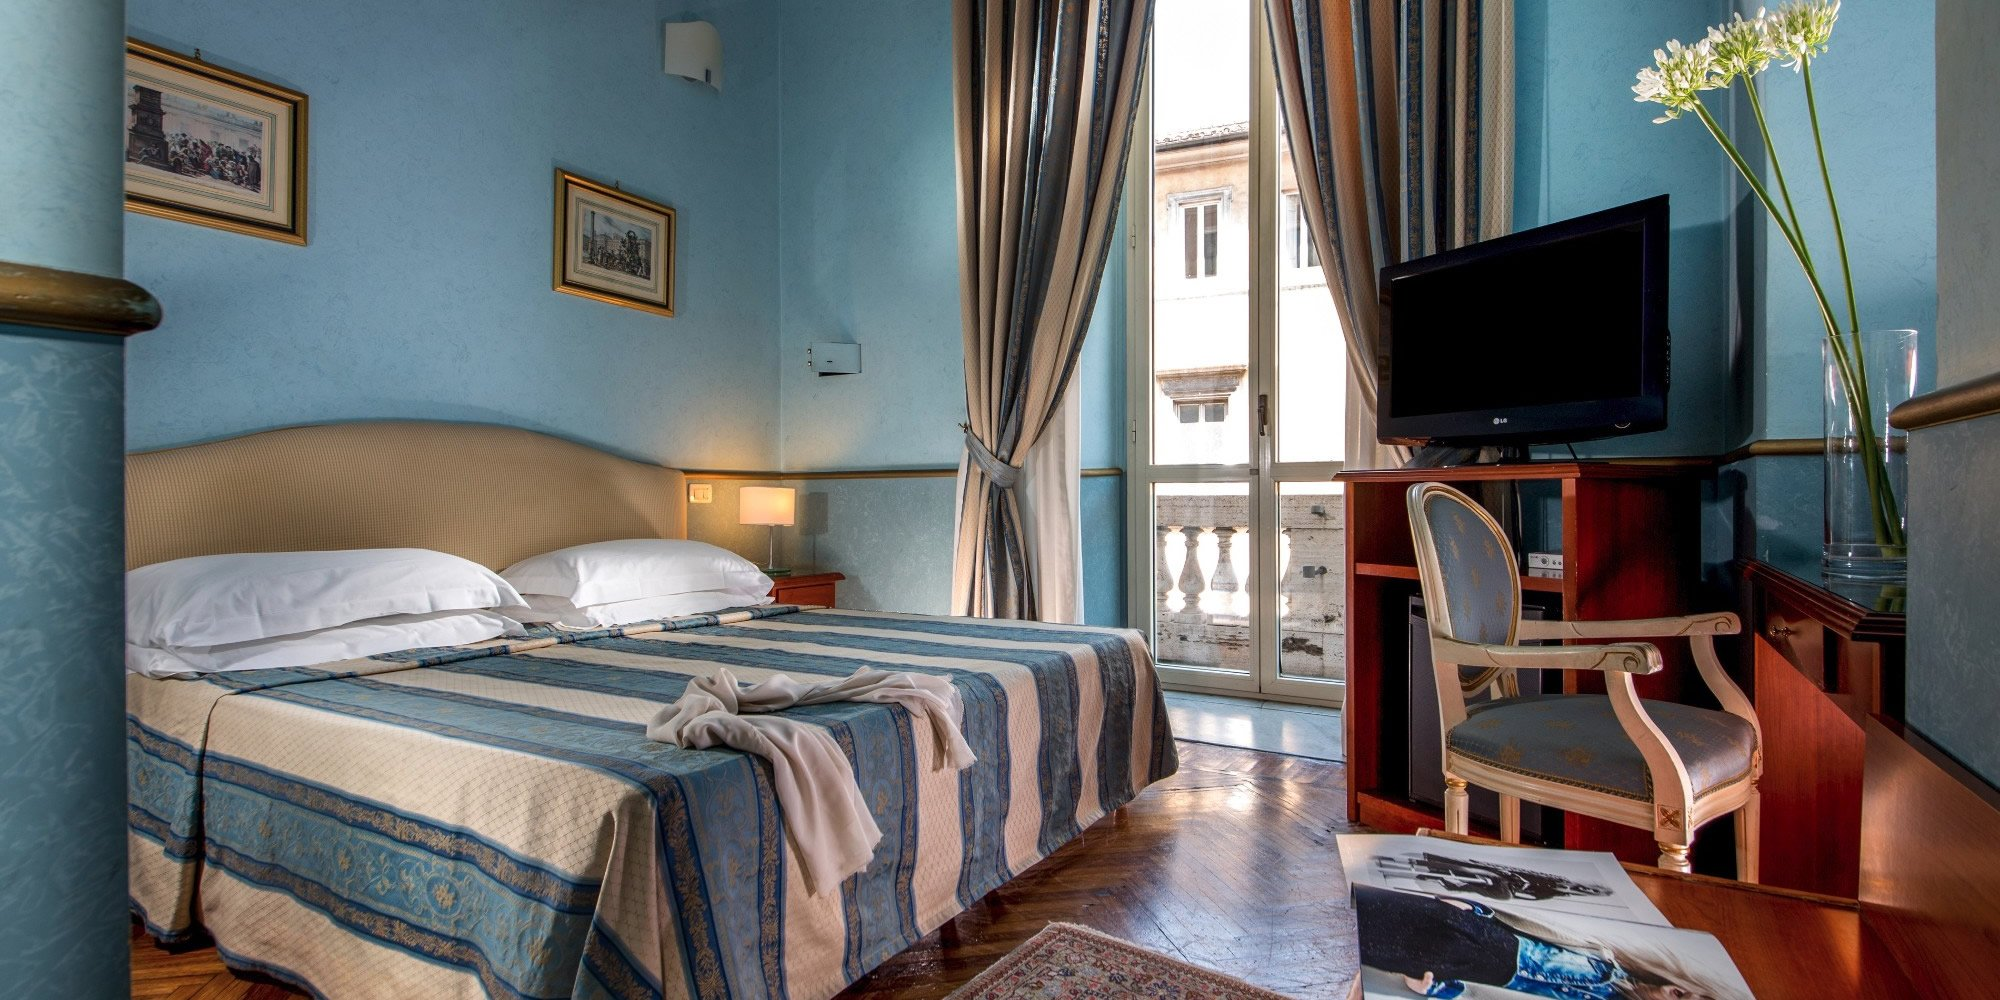 hotel tiziano rome italy official site four star hotel